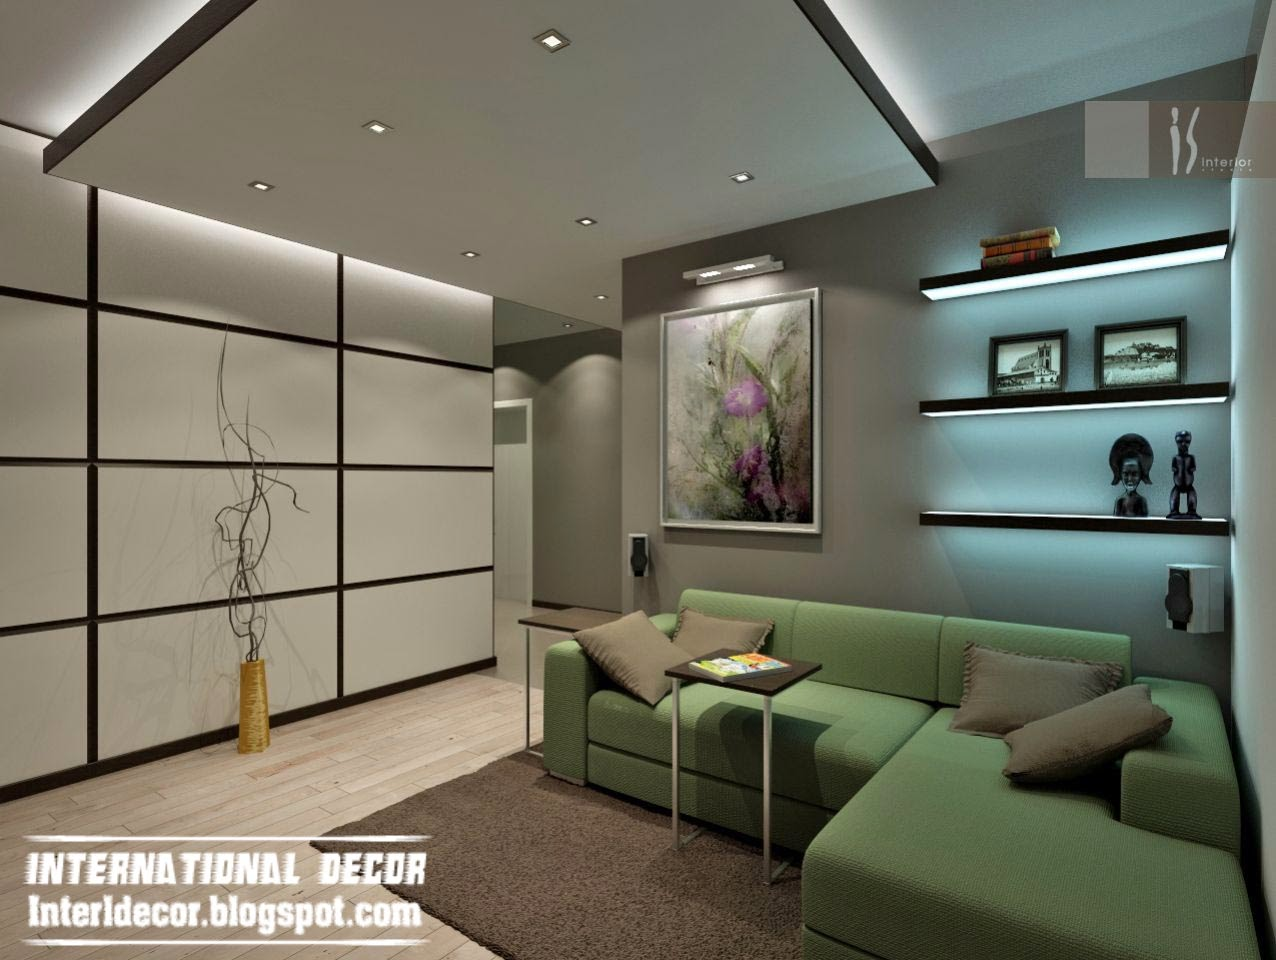 Top 10 Suspended ceiling tiles, lighting pop designs for living ...